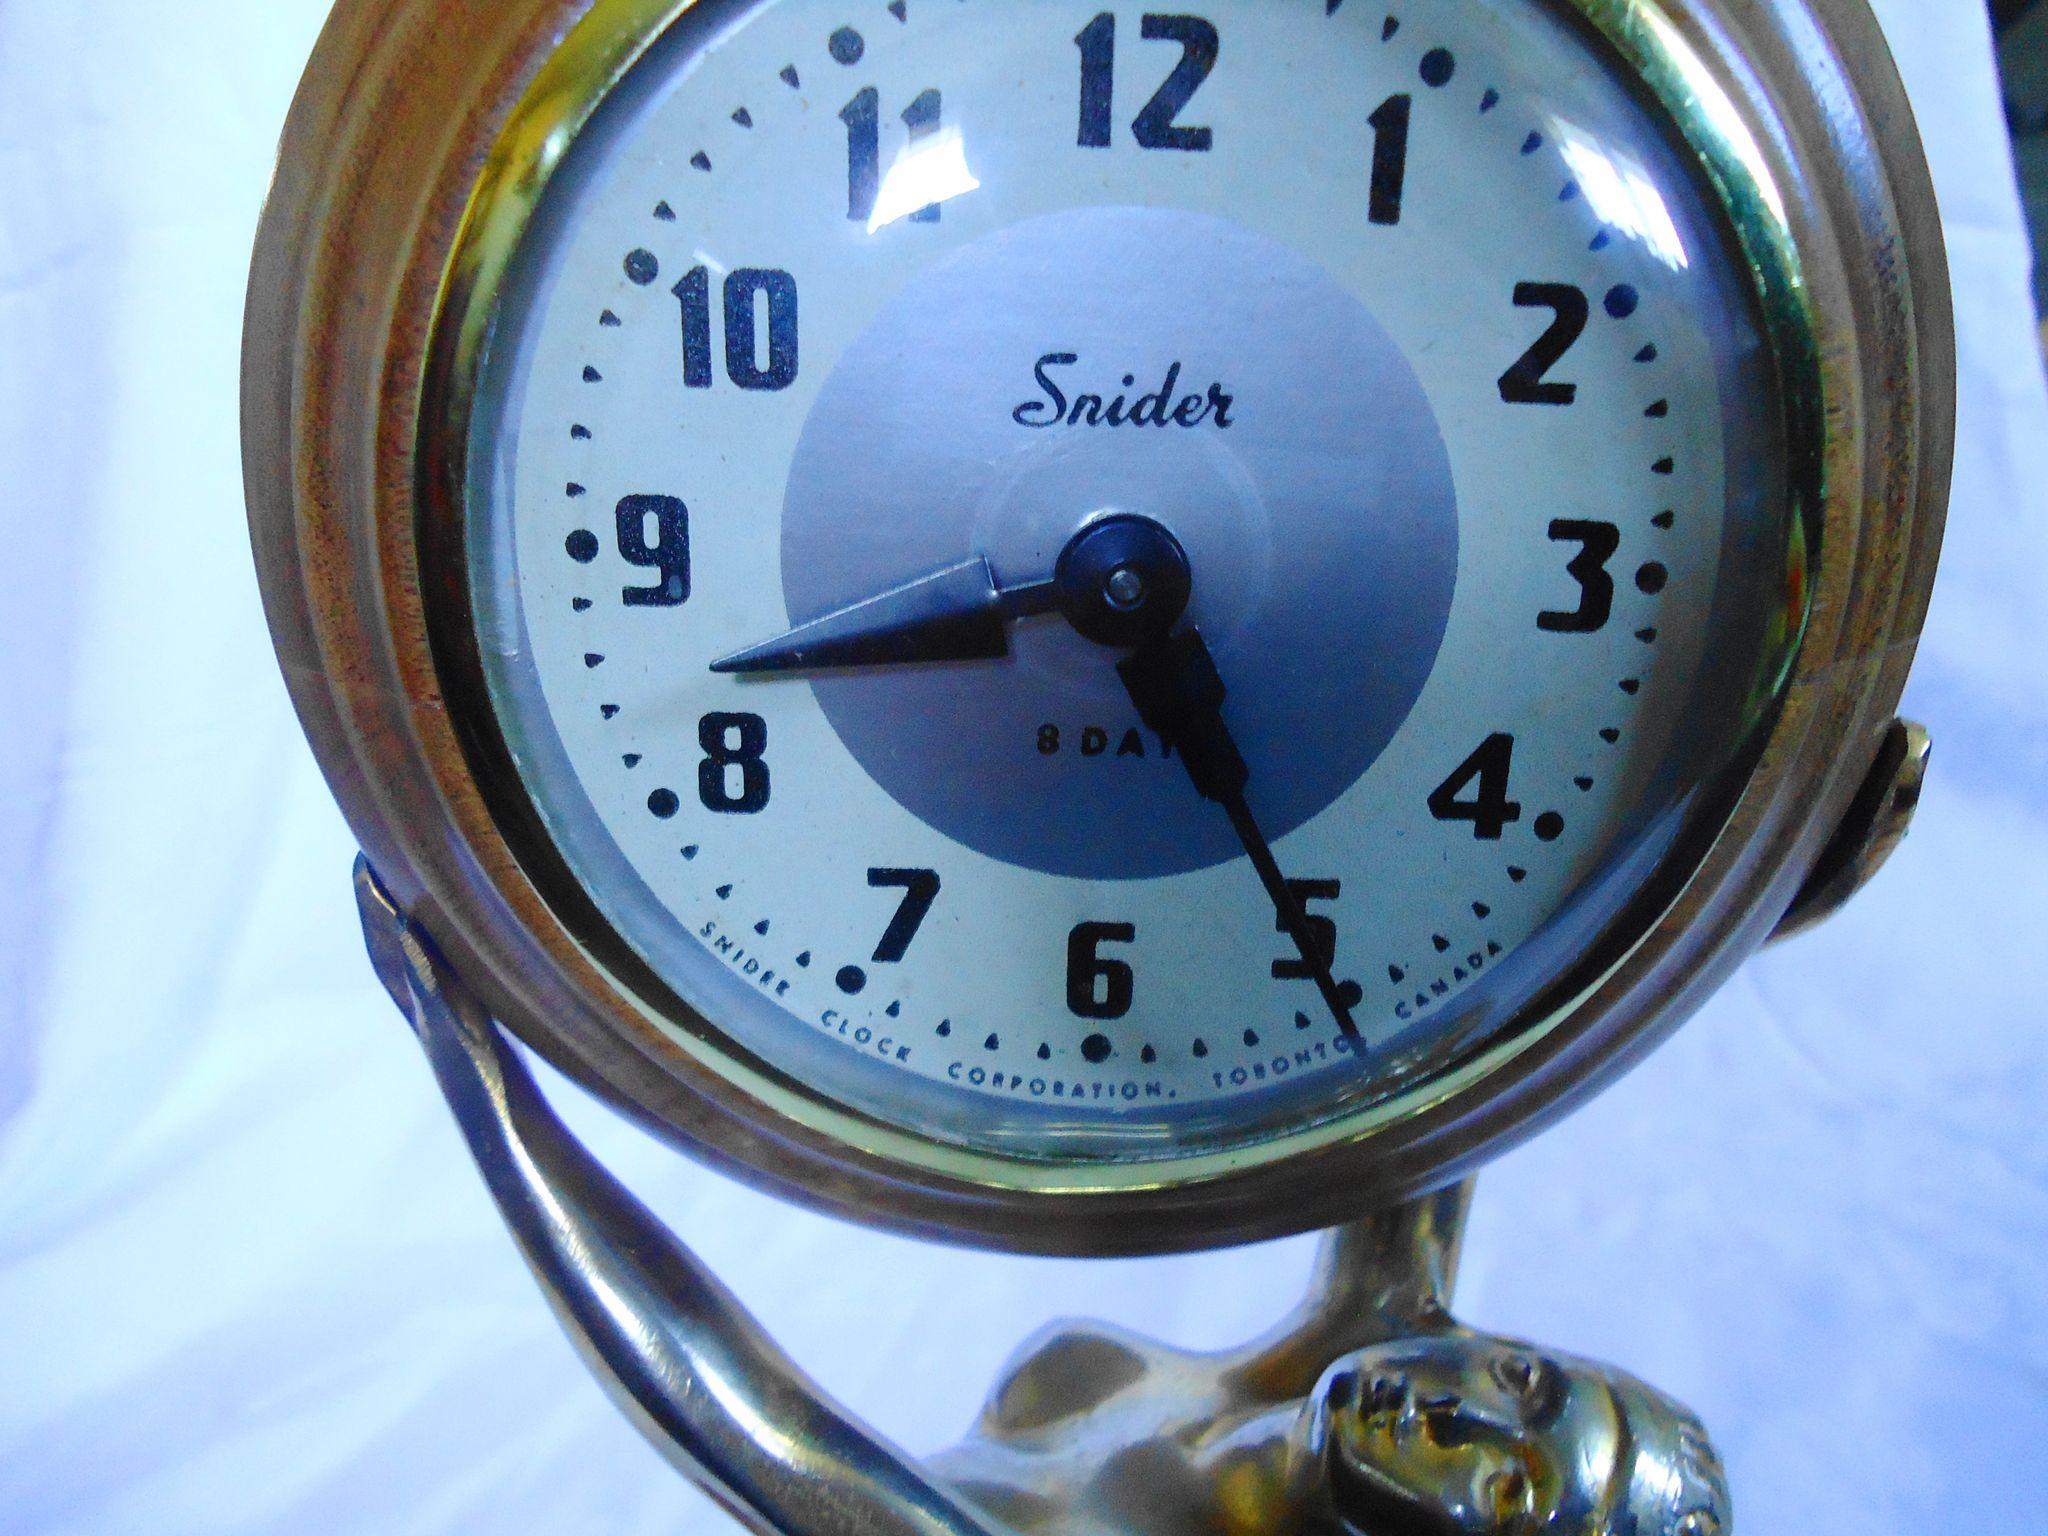 Snider 8 Day Nude Clock : Sweet Cs Collectibles | Ruby Lane